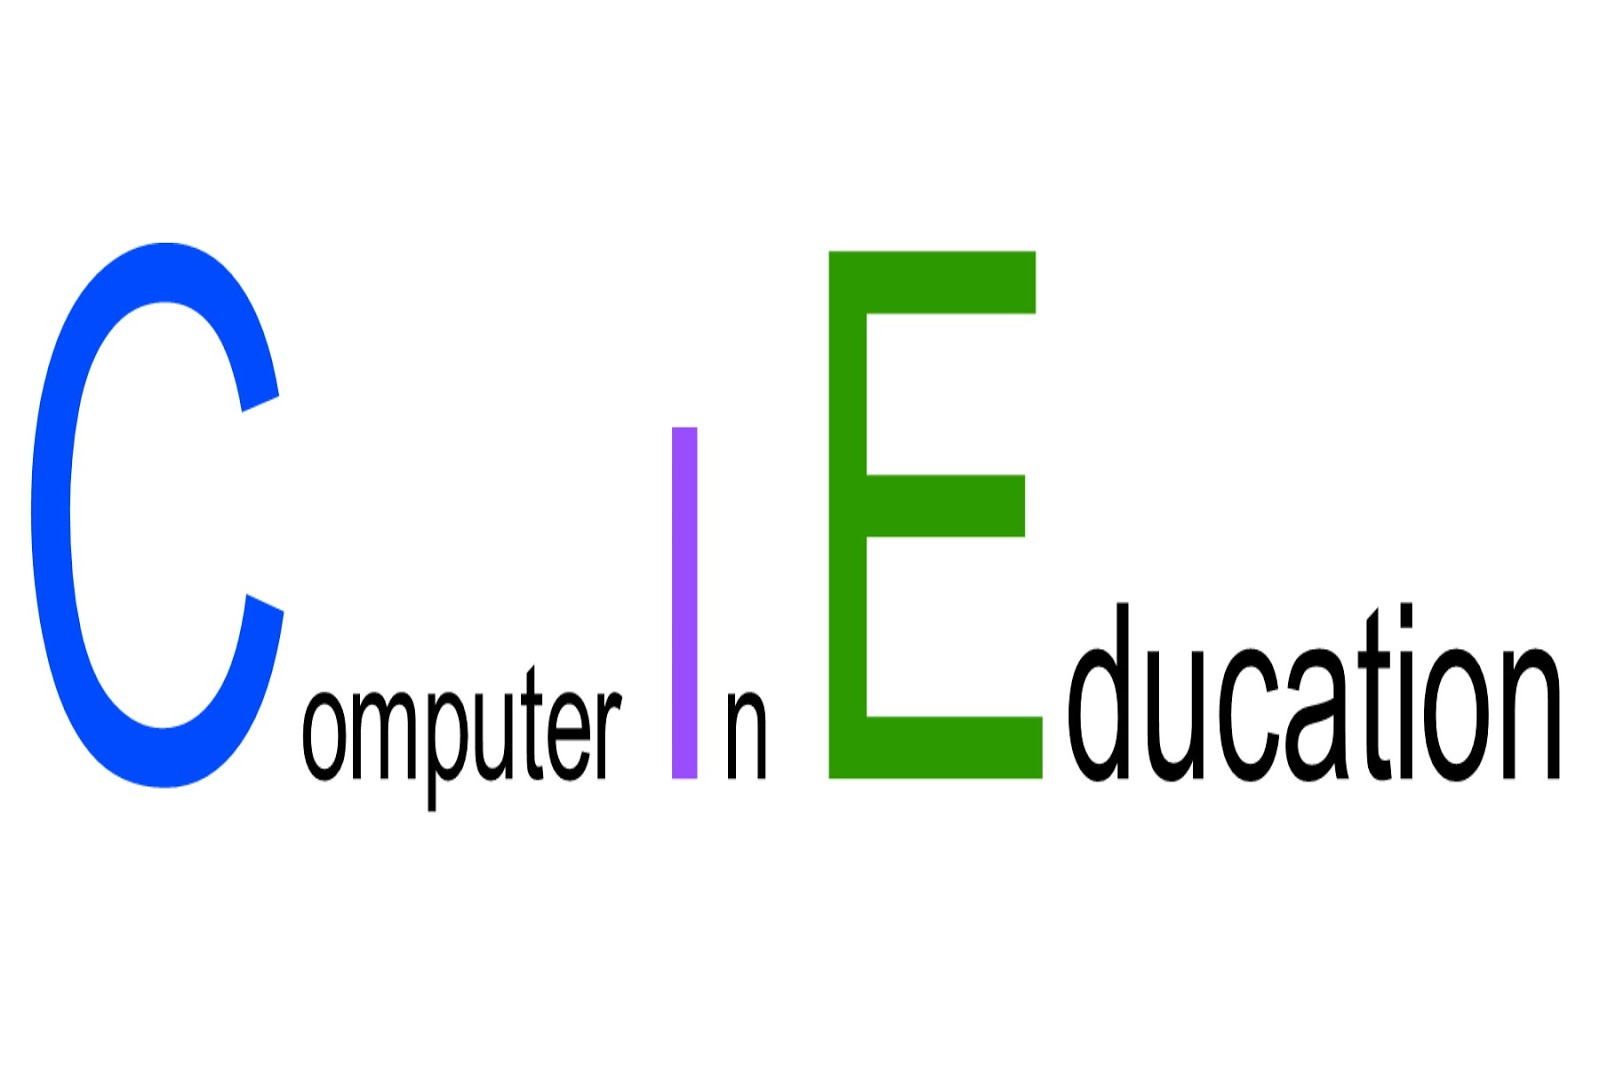 role of computers in education Computer is playing vital role in modern life computer education has great importance because use of computer has reached almost all spheres of life the modern life of today includes.